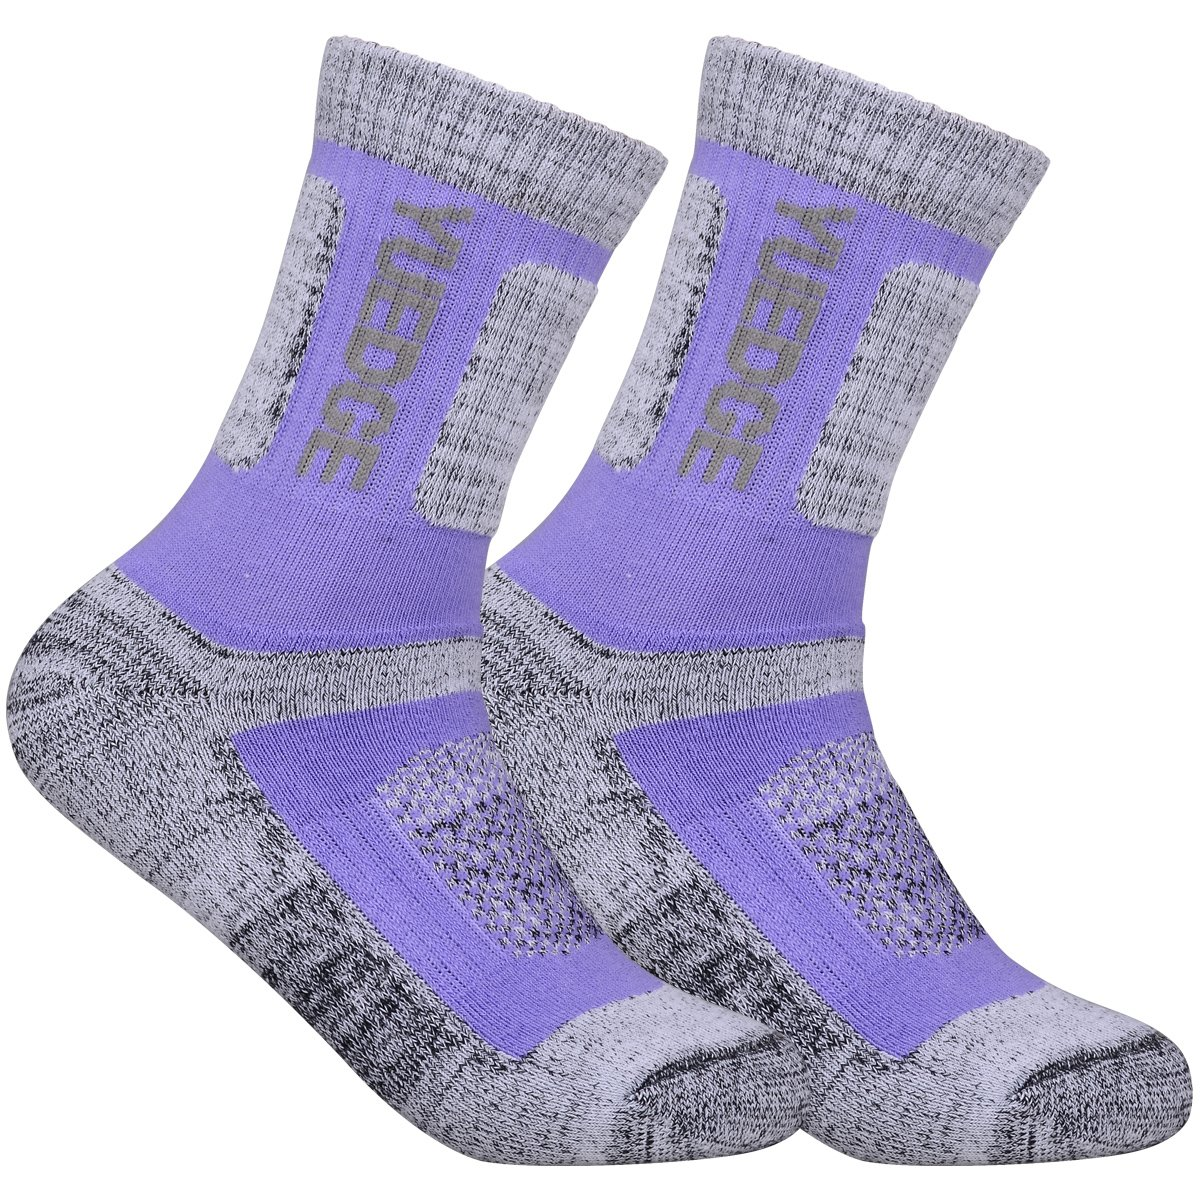 YUEDGE 3 Pairs Women's Women's Wicking Cushion Crew Socks Performance Workout Athletic Sports Socks (L) by YUEDGE (Image #4)